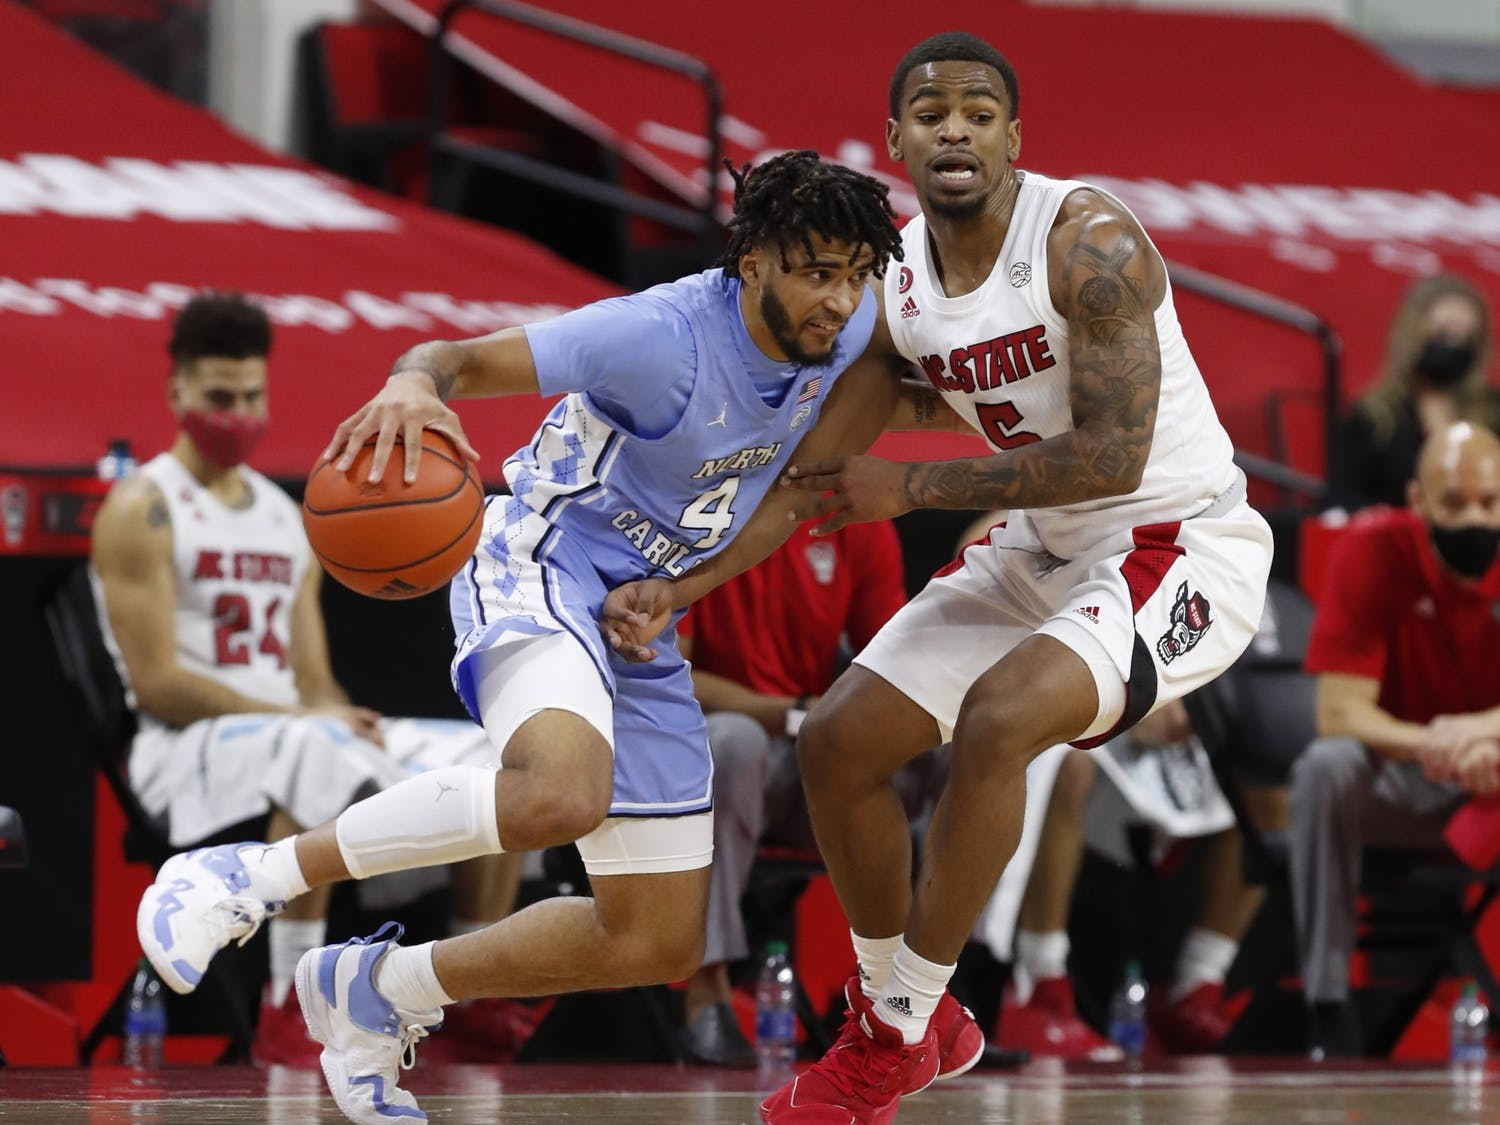 R.J. Davis (4) drives around N.C. State's Thomas Allen (5) during the first half of N.C. State's game against UNC at PNC Arena in Raleigh, N.C., Tuesday, December 22, 2020. Carolina lost 79-76. Photo courtesy of Ethan Hyman